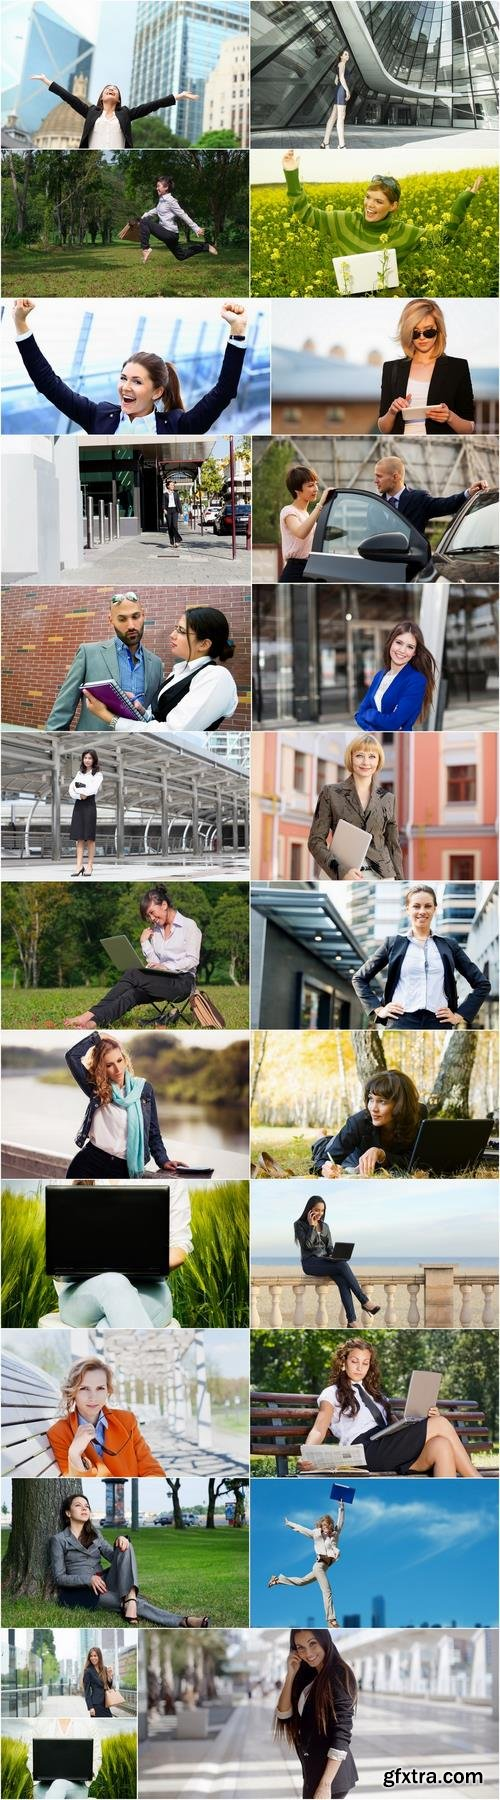 Business ladies girl woman on the nature of the field relaxation holiday 25 HQ Jpeg